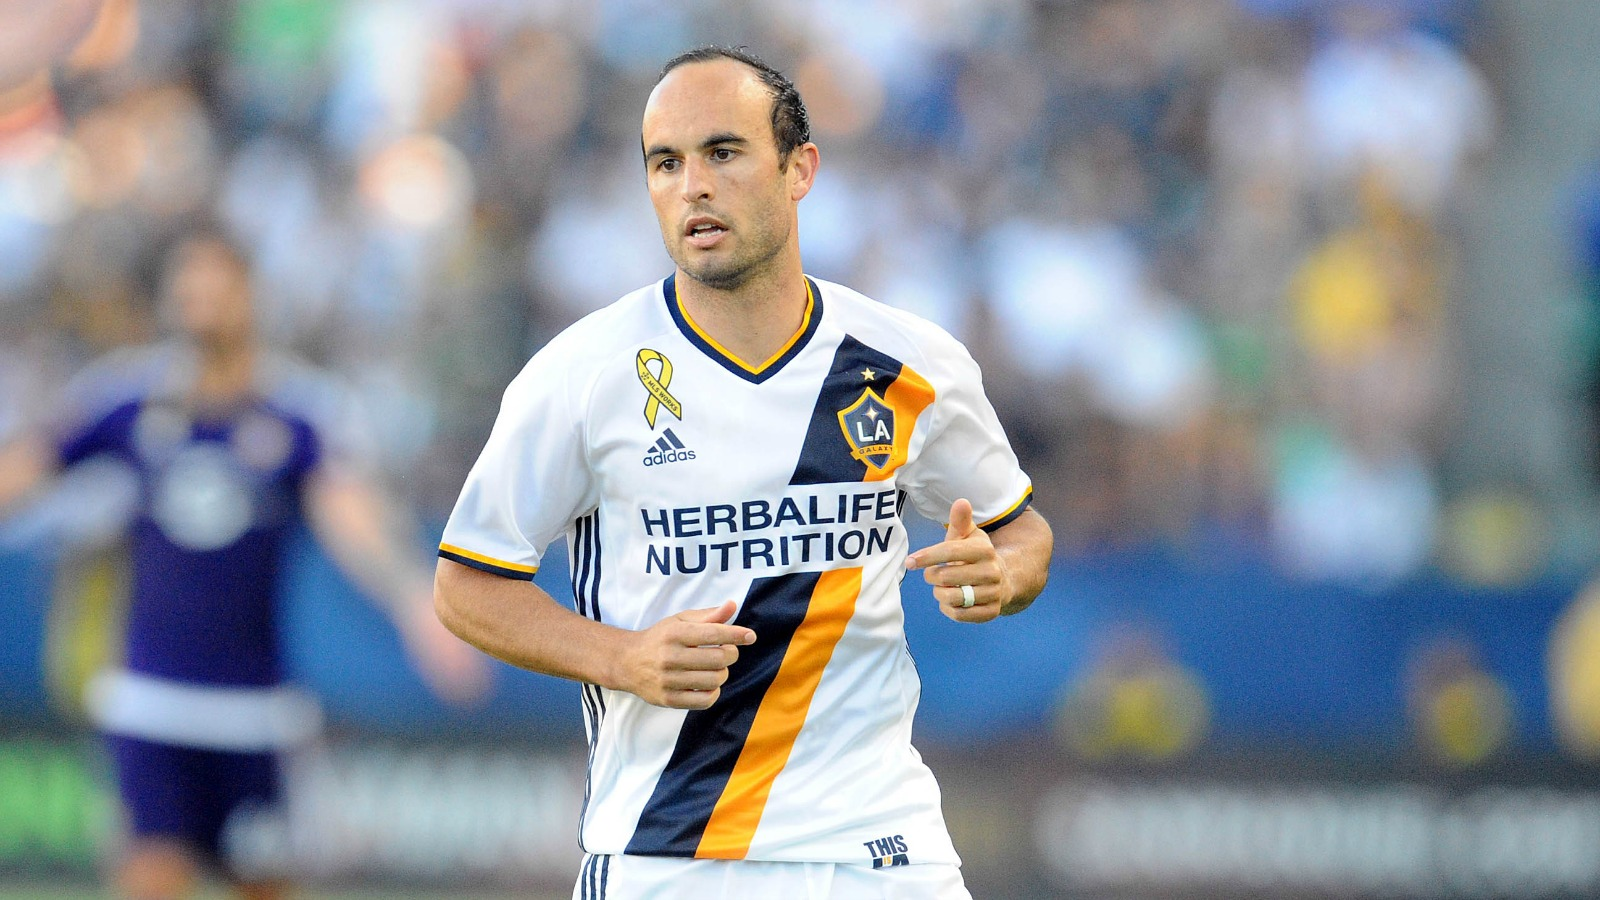 Landon Donovan has been exactly what the Galaxy need from him so far